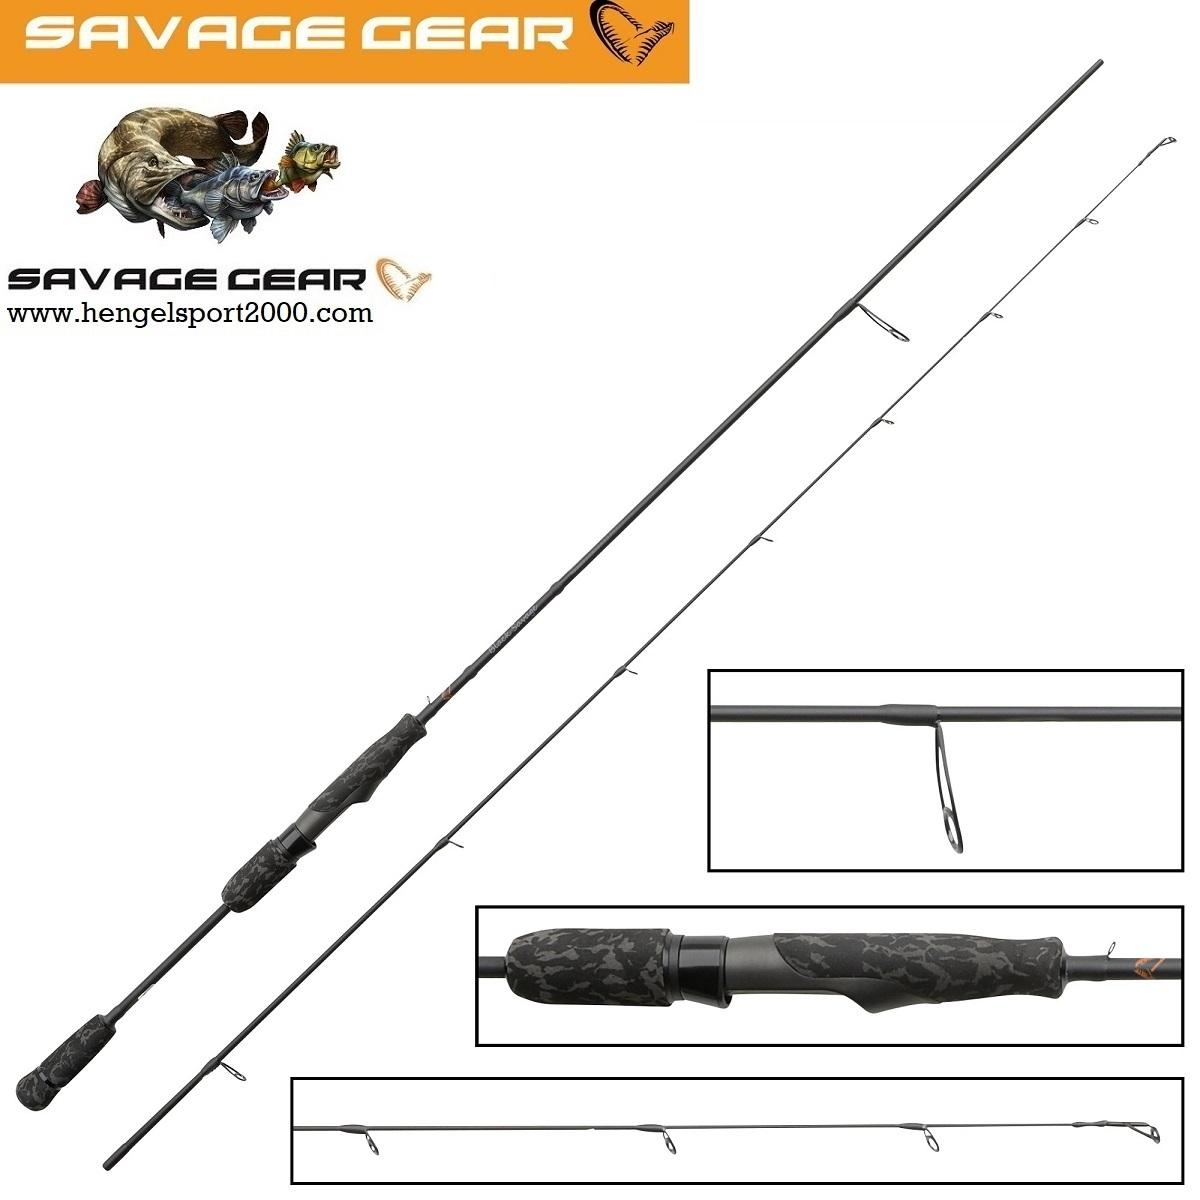 Savage Gear Black Savage Spinning Rod 251 cm 20 - 60 gram